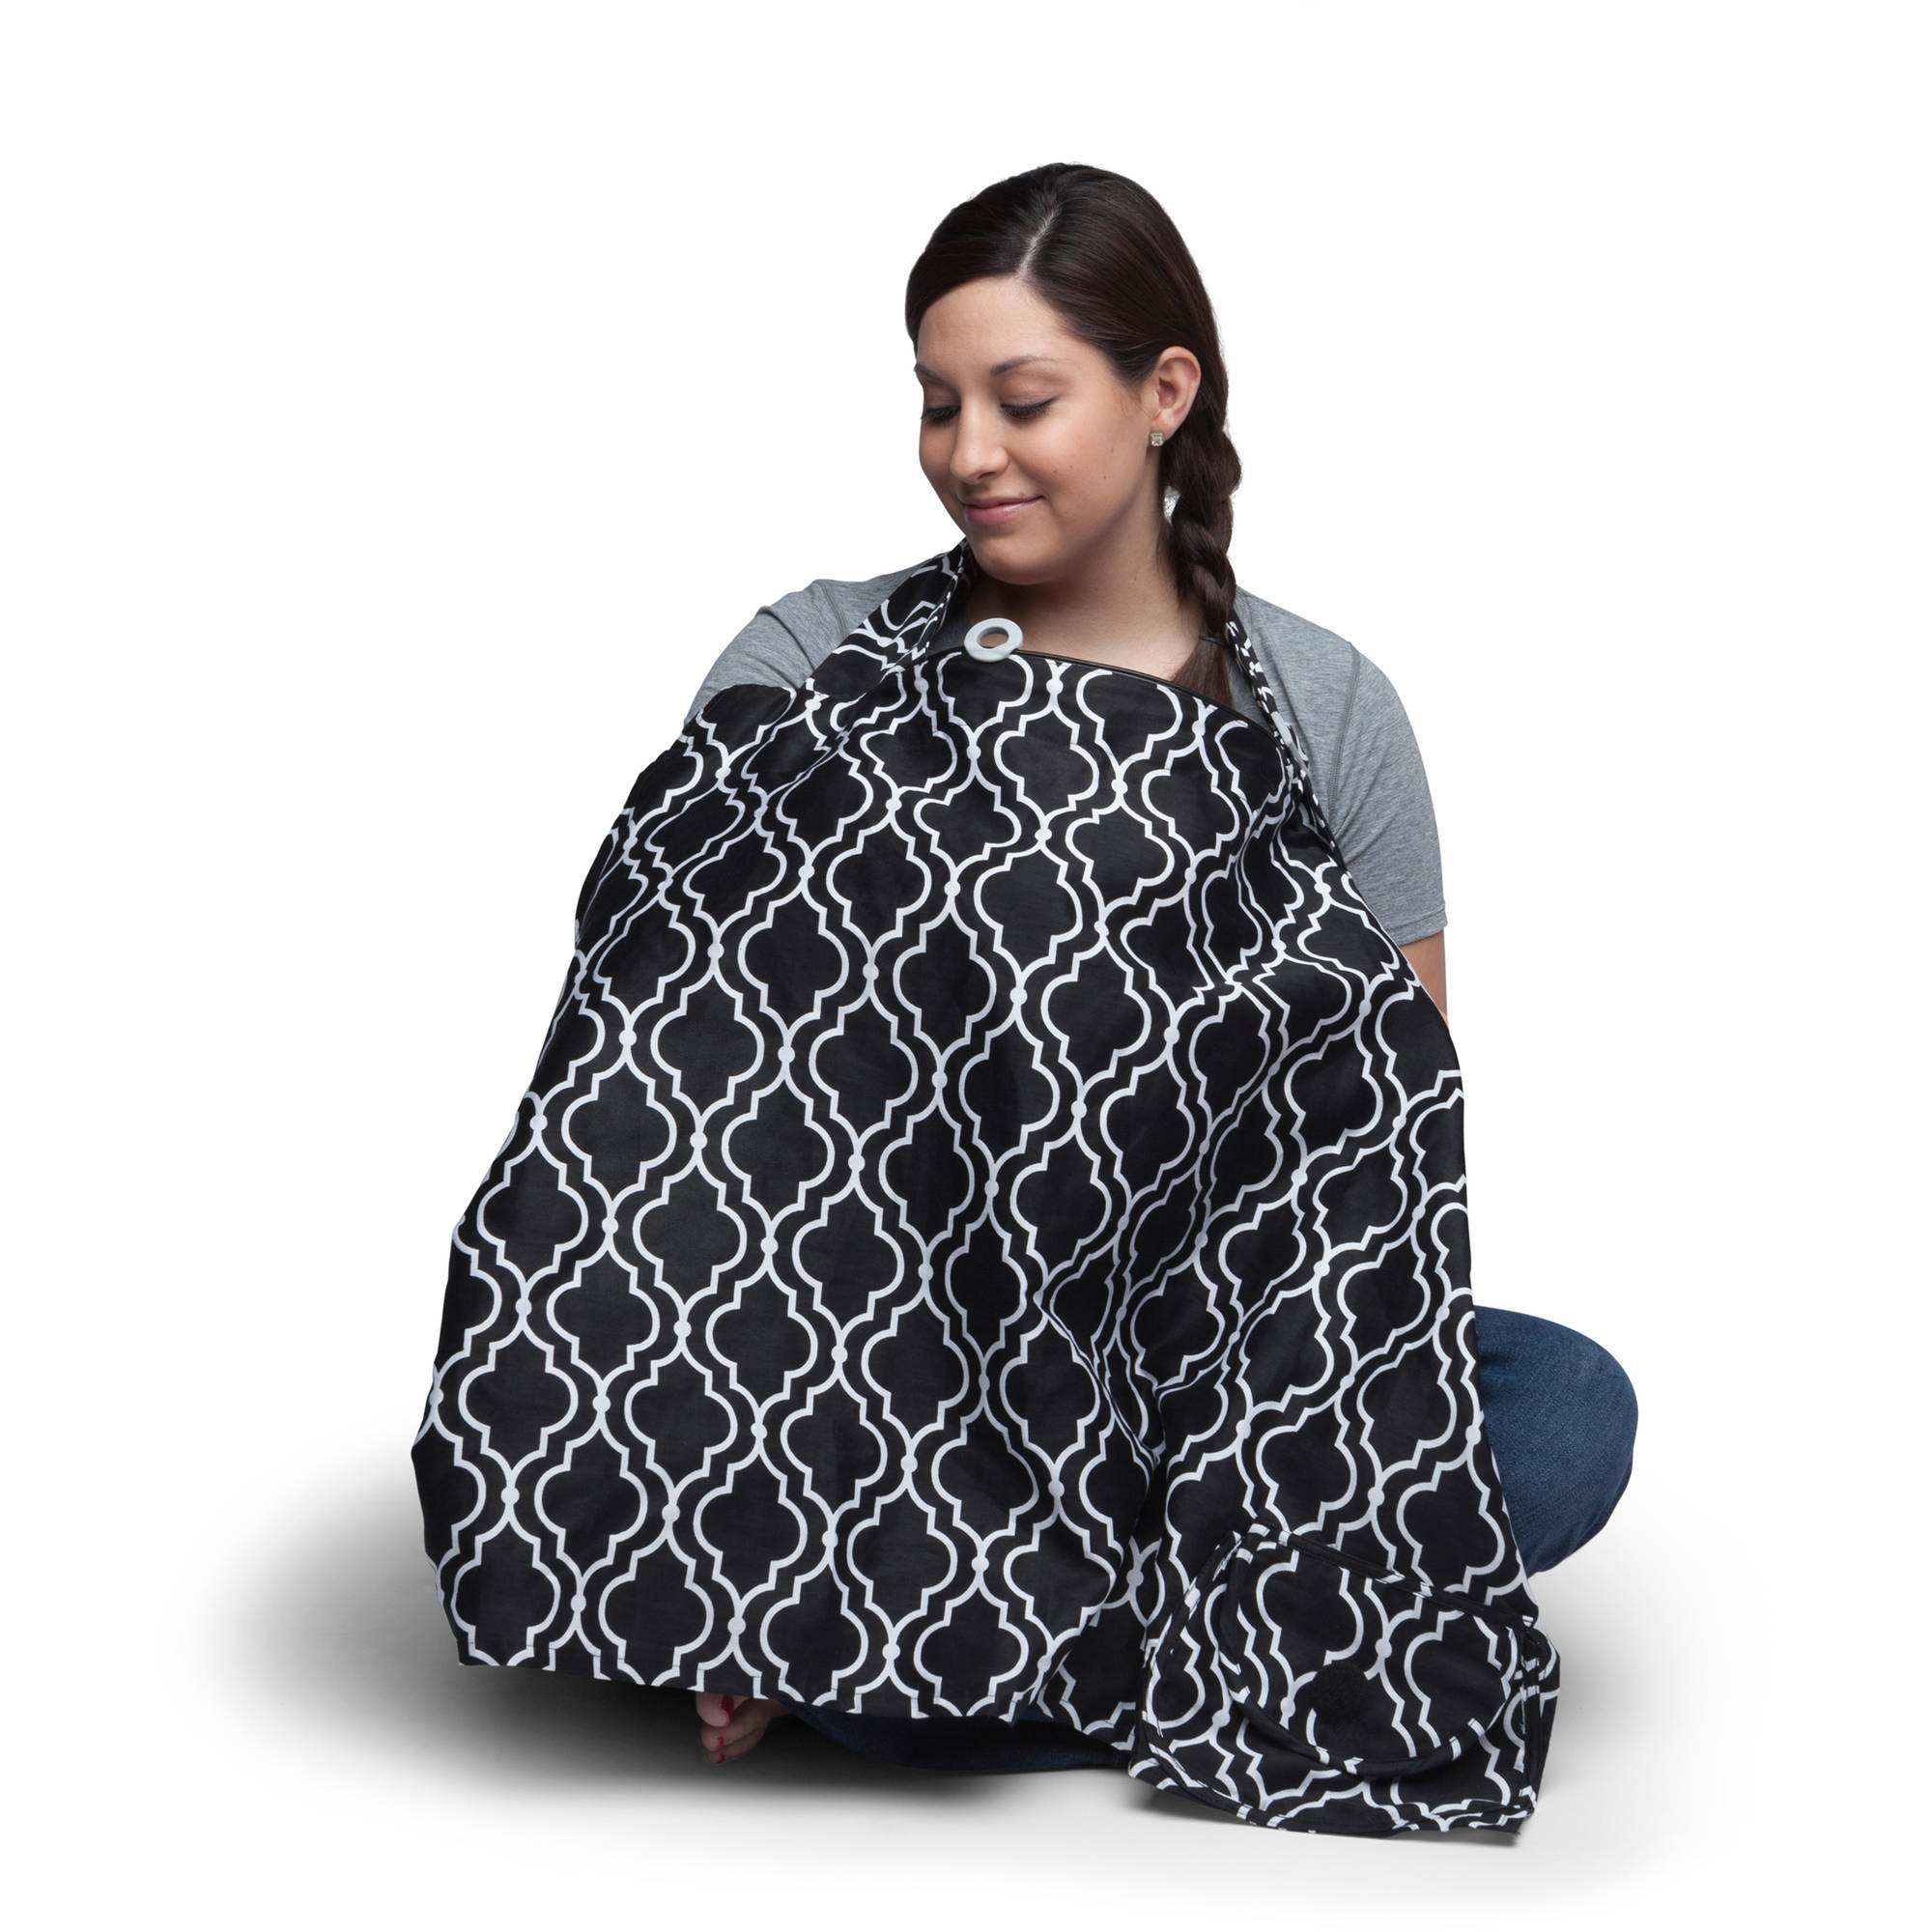 Boppy Nursing Cover - Available in Multiple Patterns